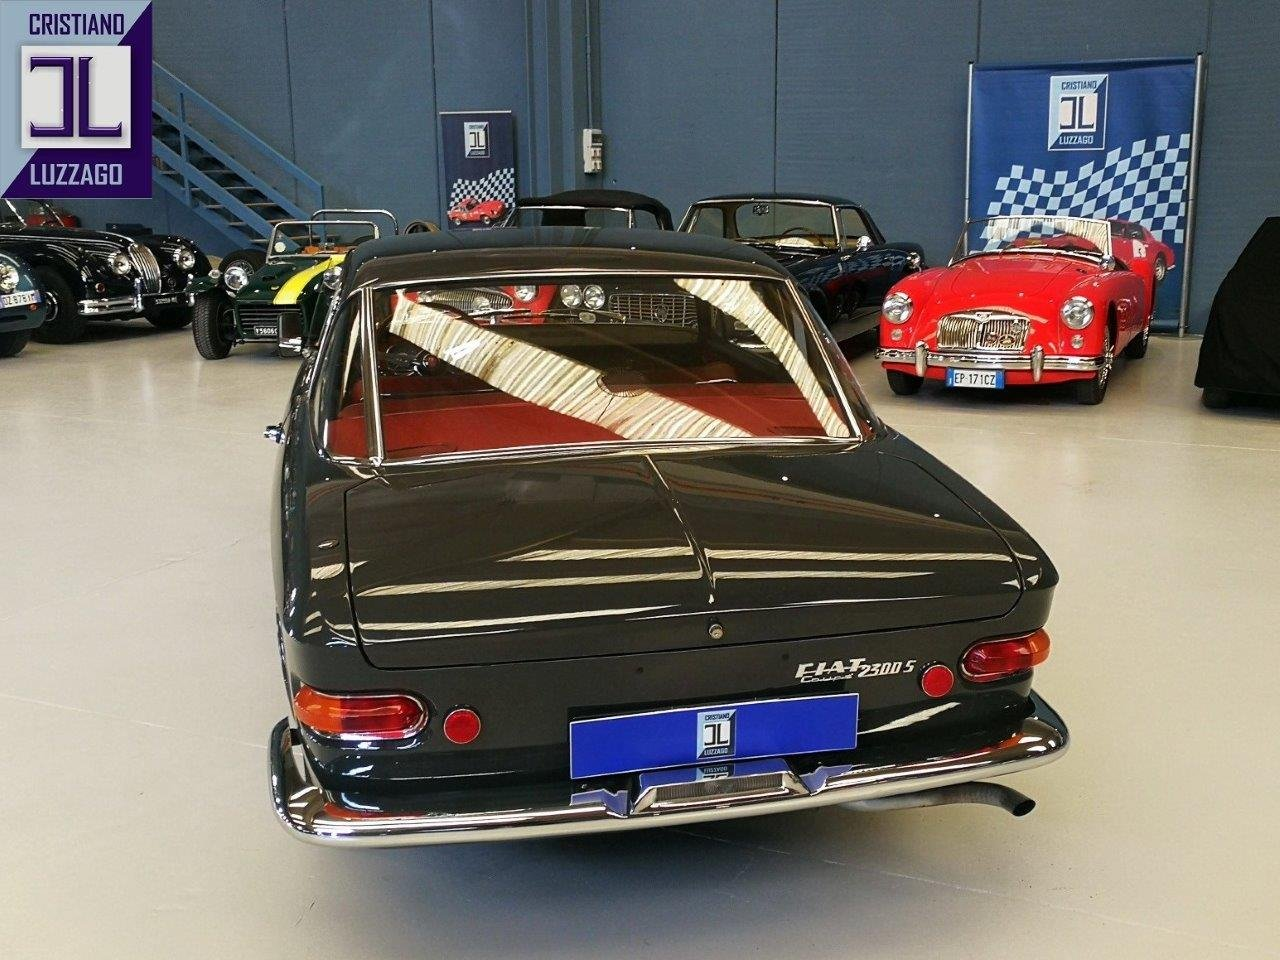 1967 FIAT 2300 S COUPE Recently restored For Sale (picture 2 of 6)